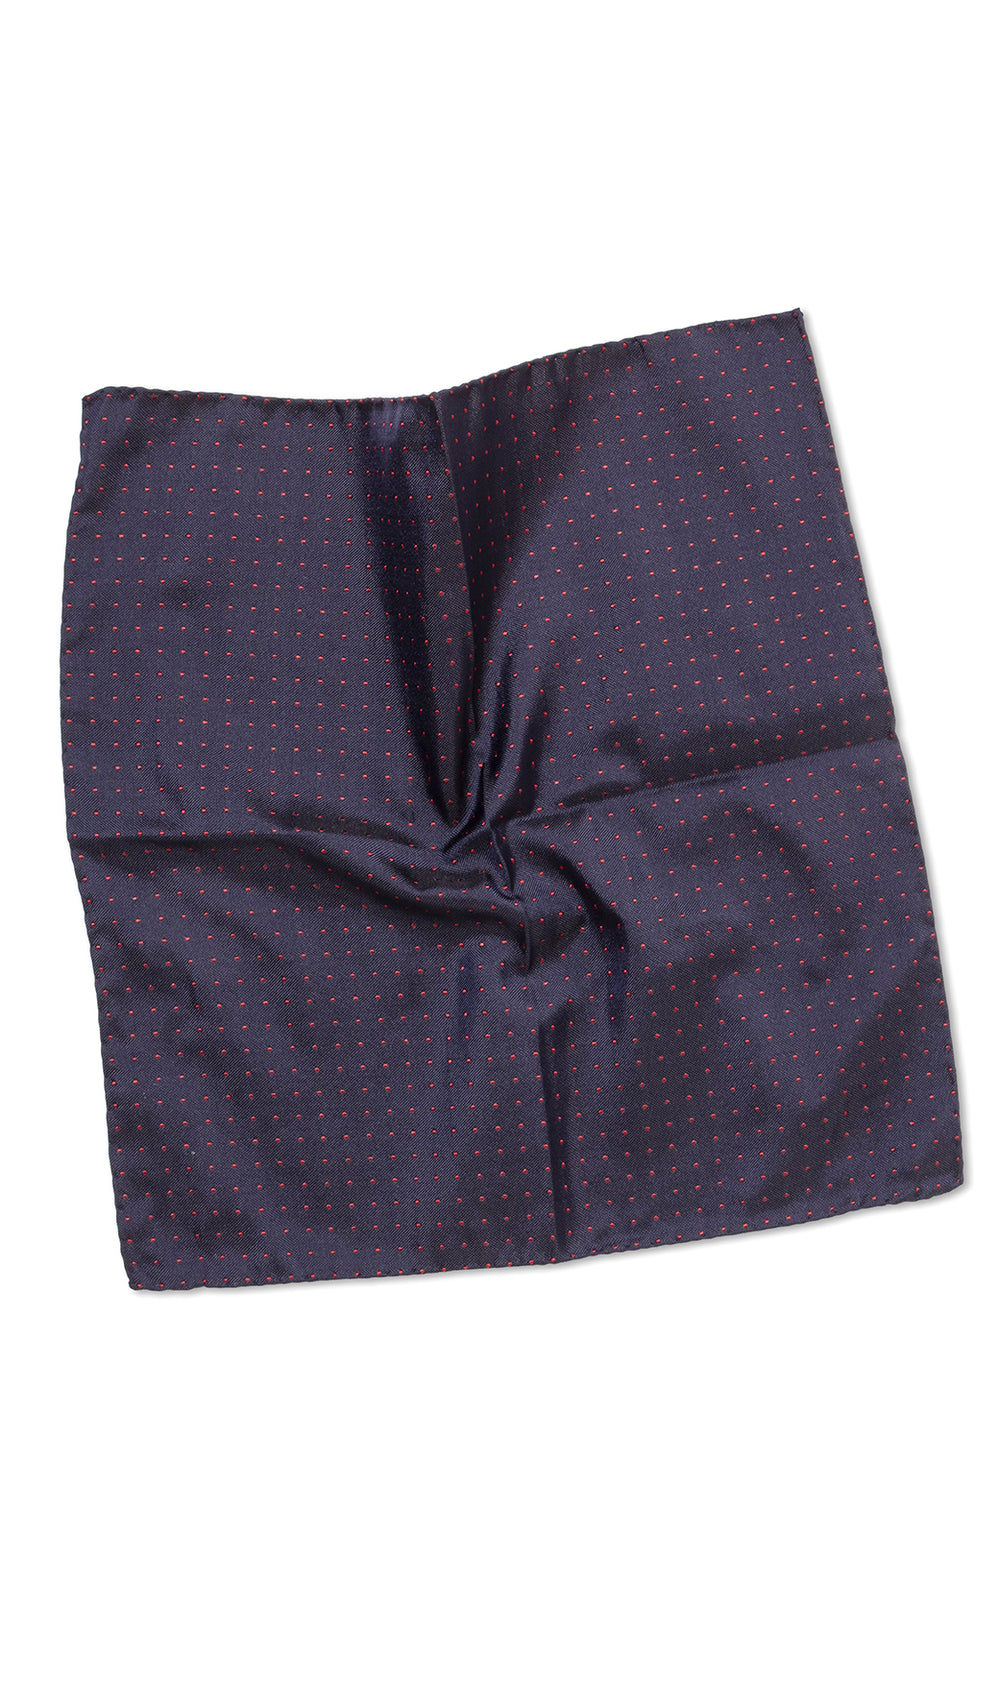 Cantini Navy Gold Dot Pocket Square - MCM Studio